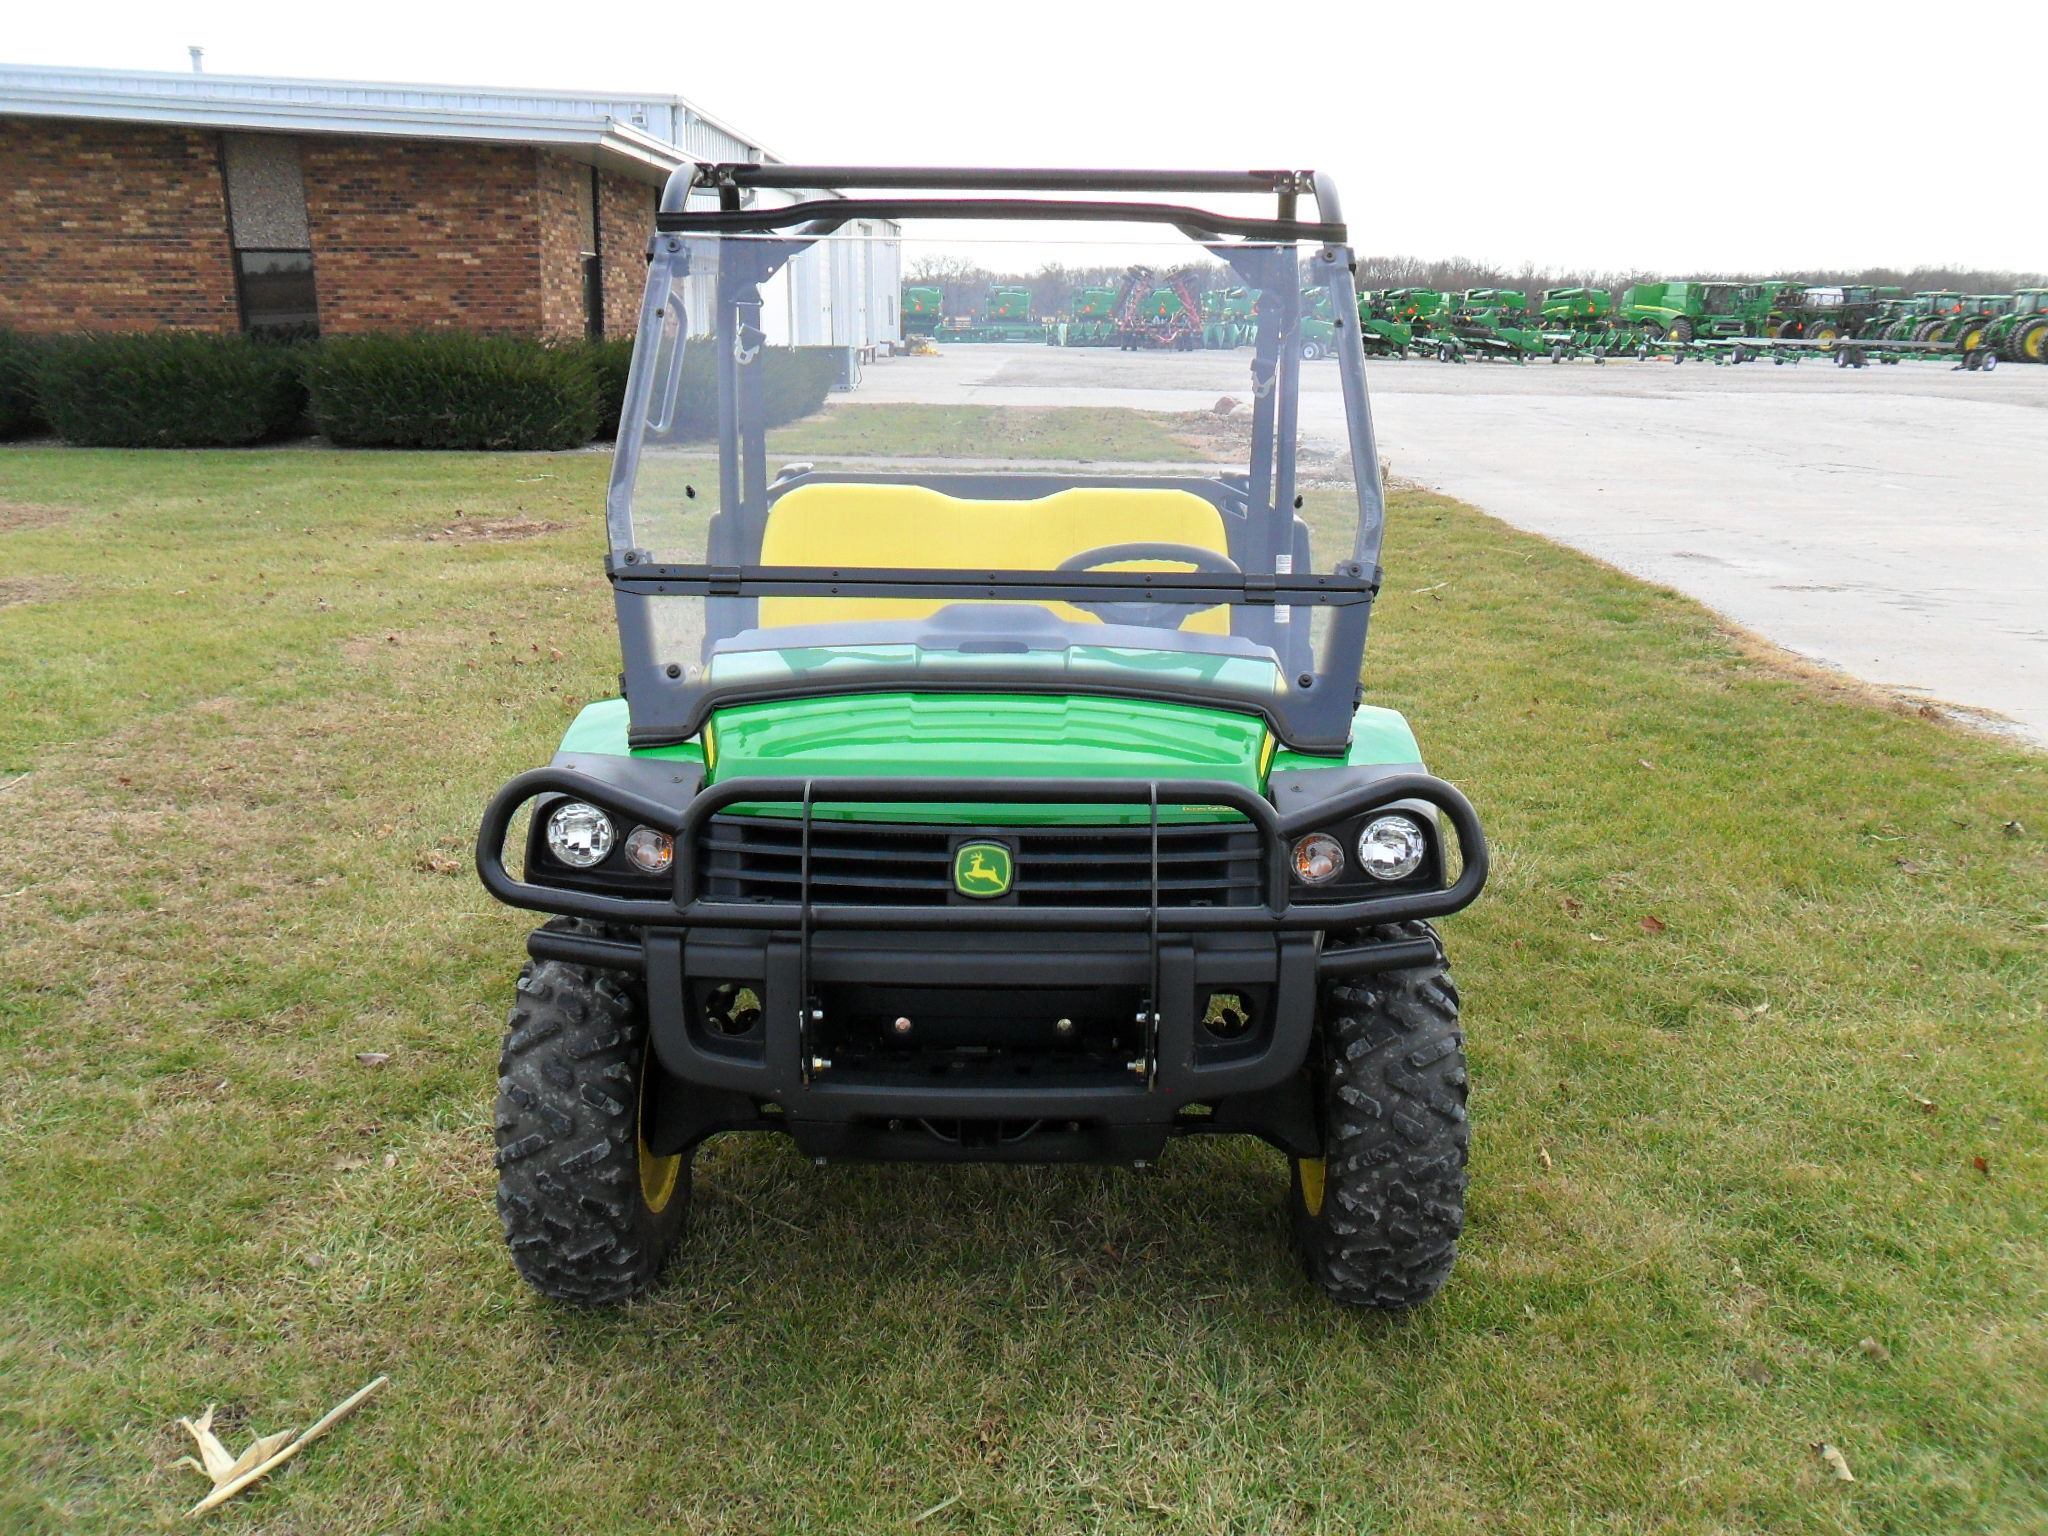 john deere xuv 825i green atvs gators for sale 65595. Black Bedroom Furniture Sets. Home Design Ideas